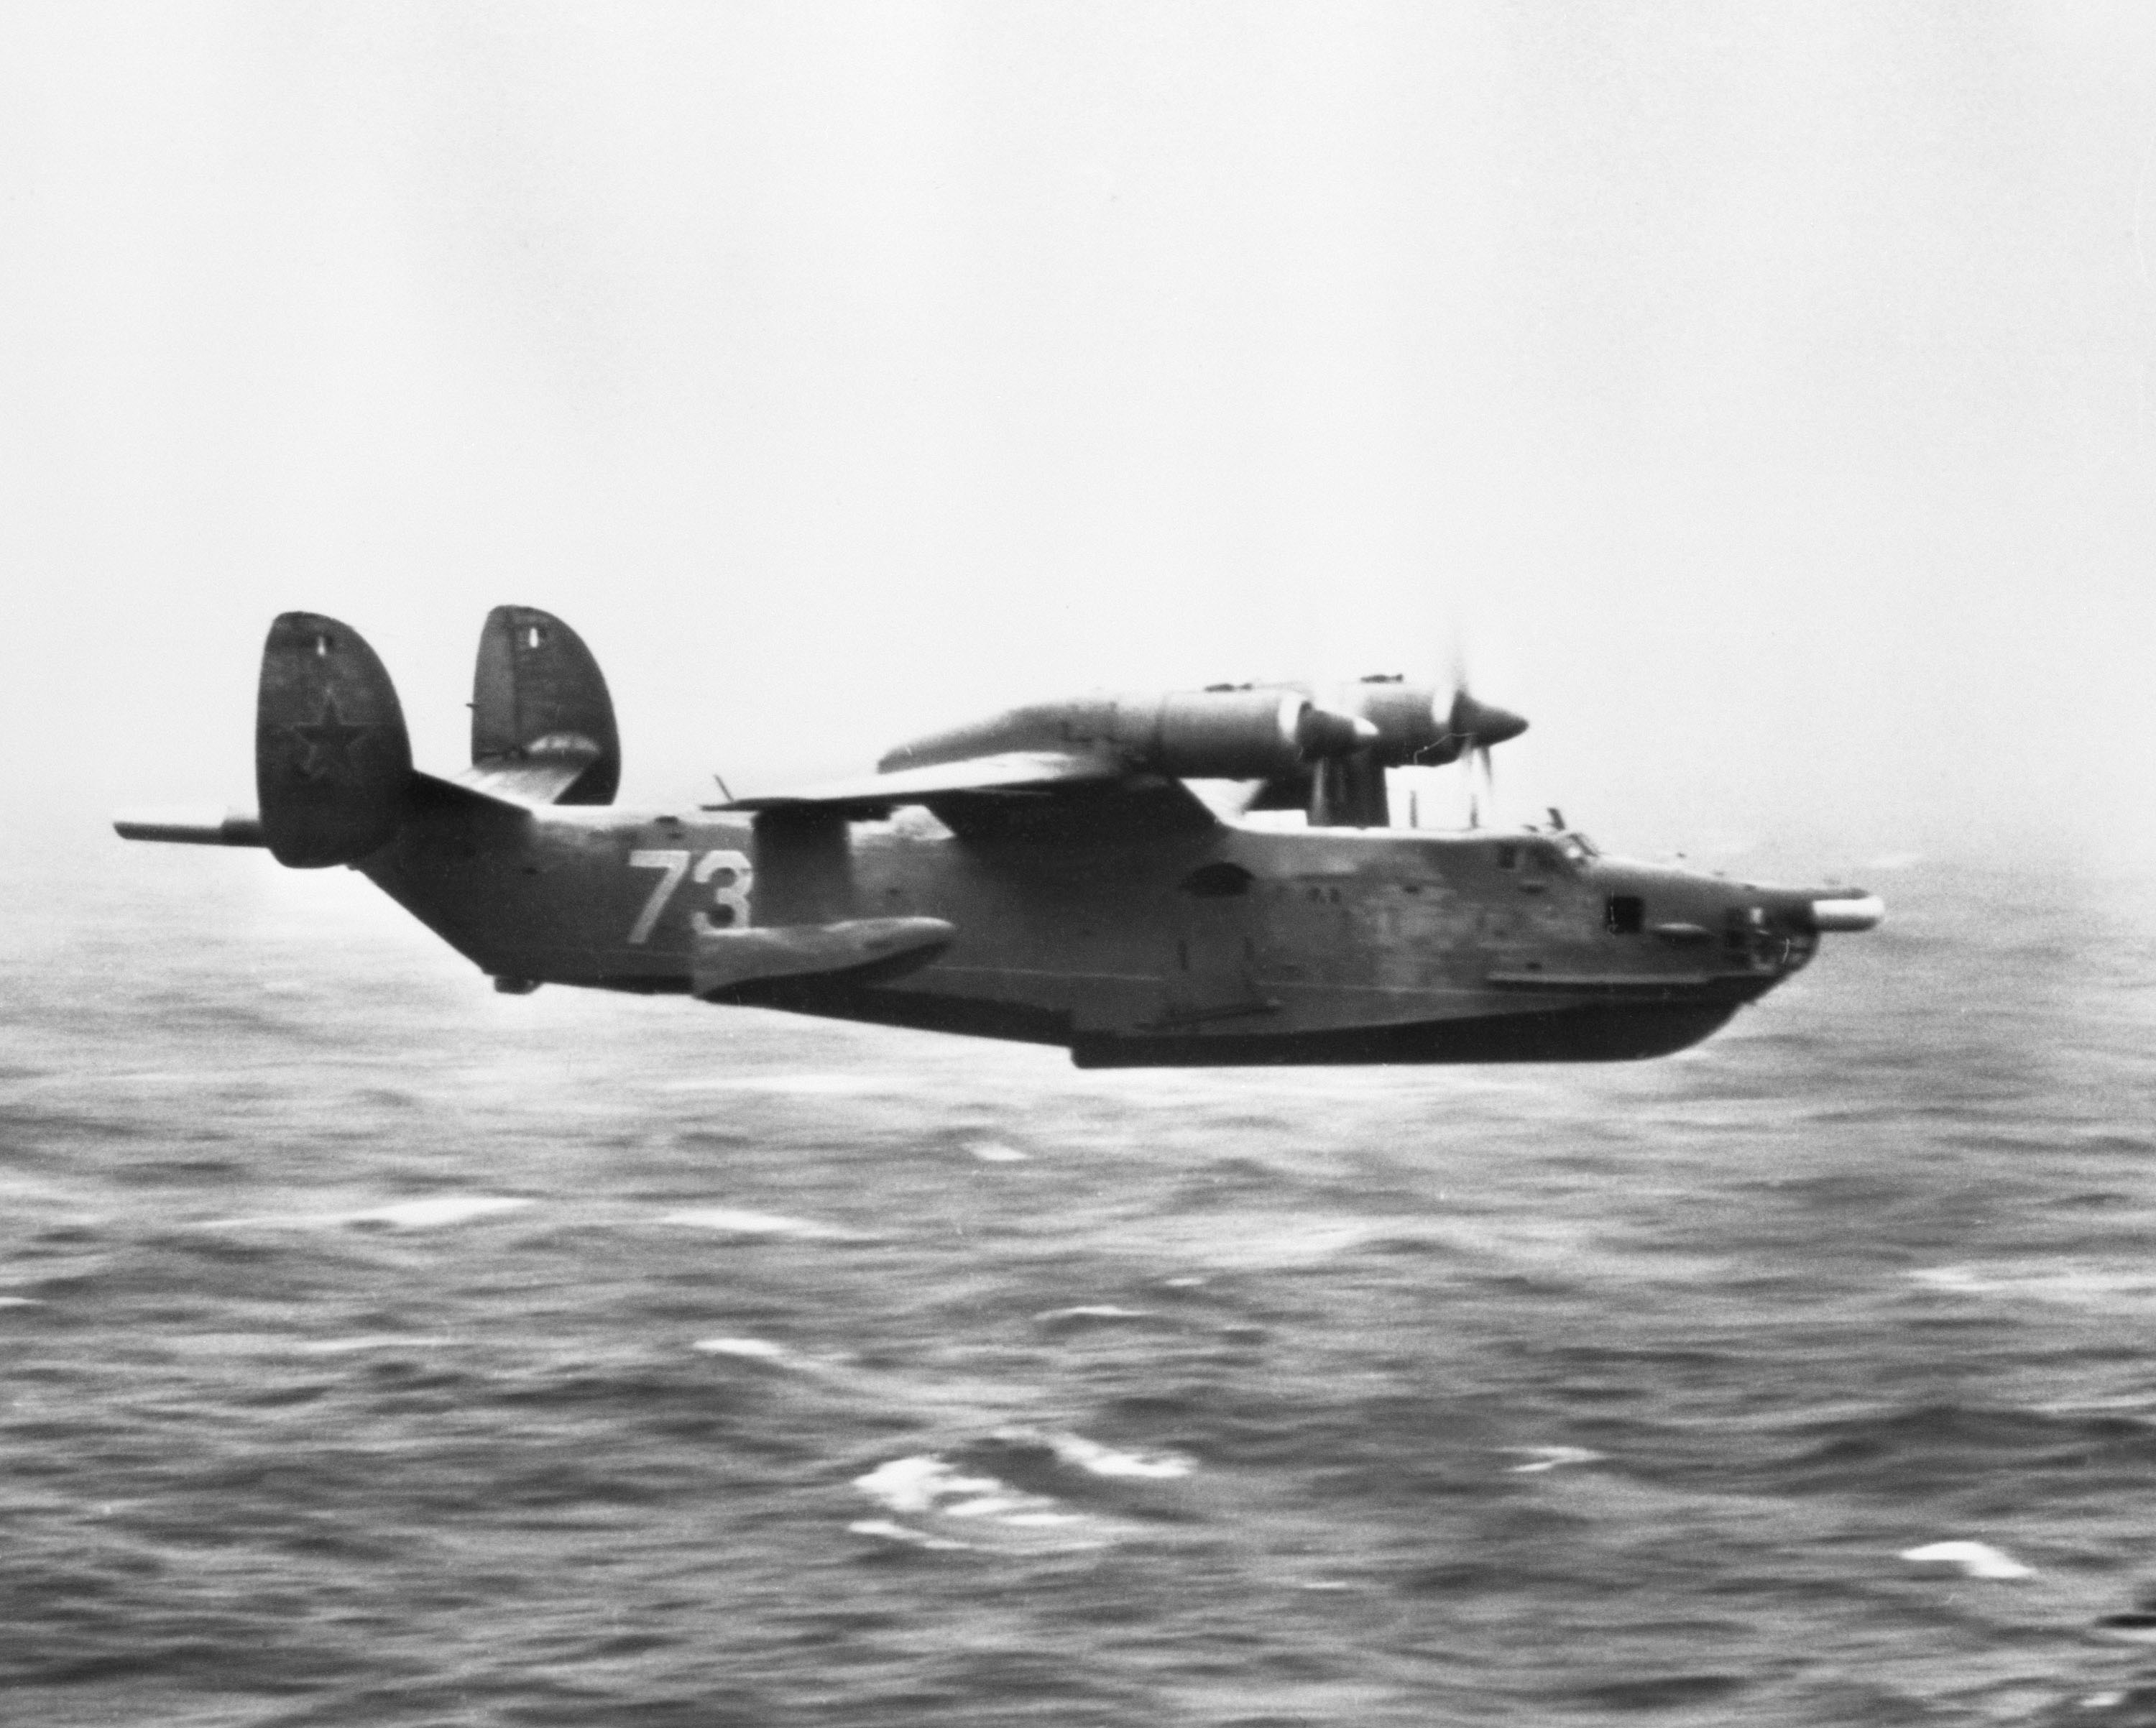 A right side view of a Soviet Be-12 Mail patrol/anti-submarine warfare aircraft in flight